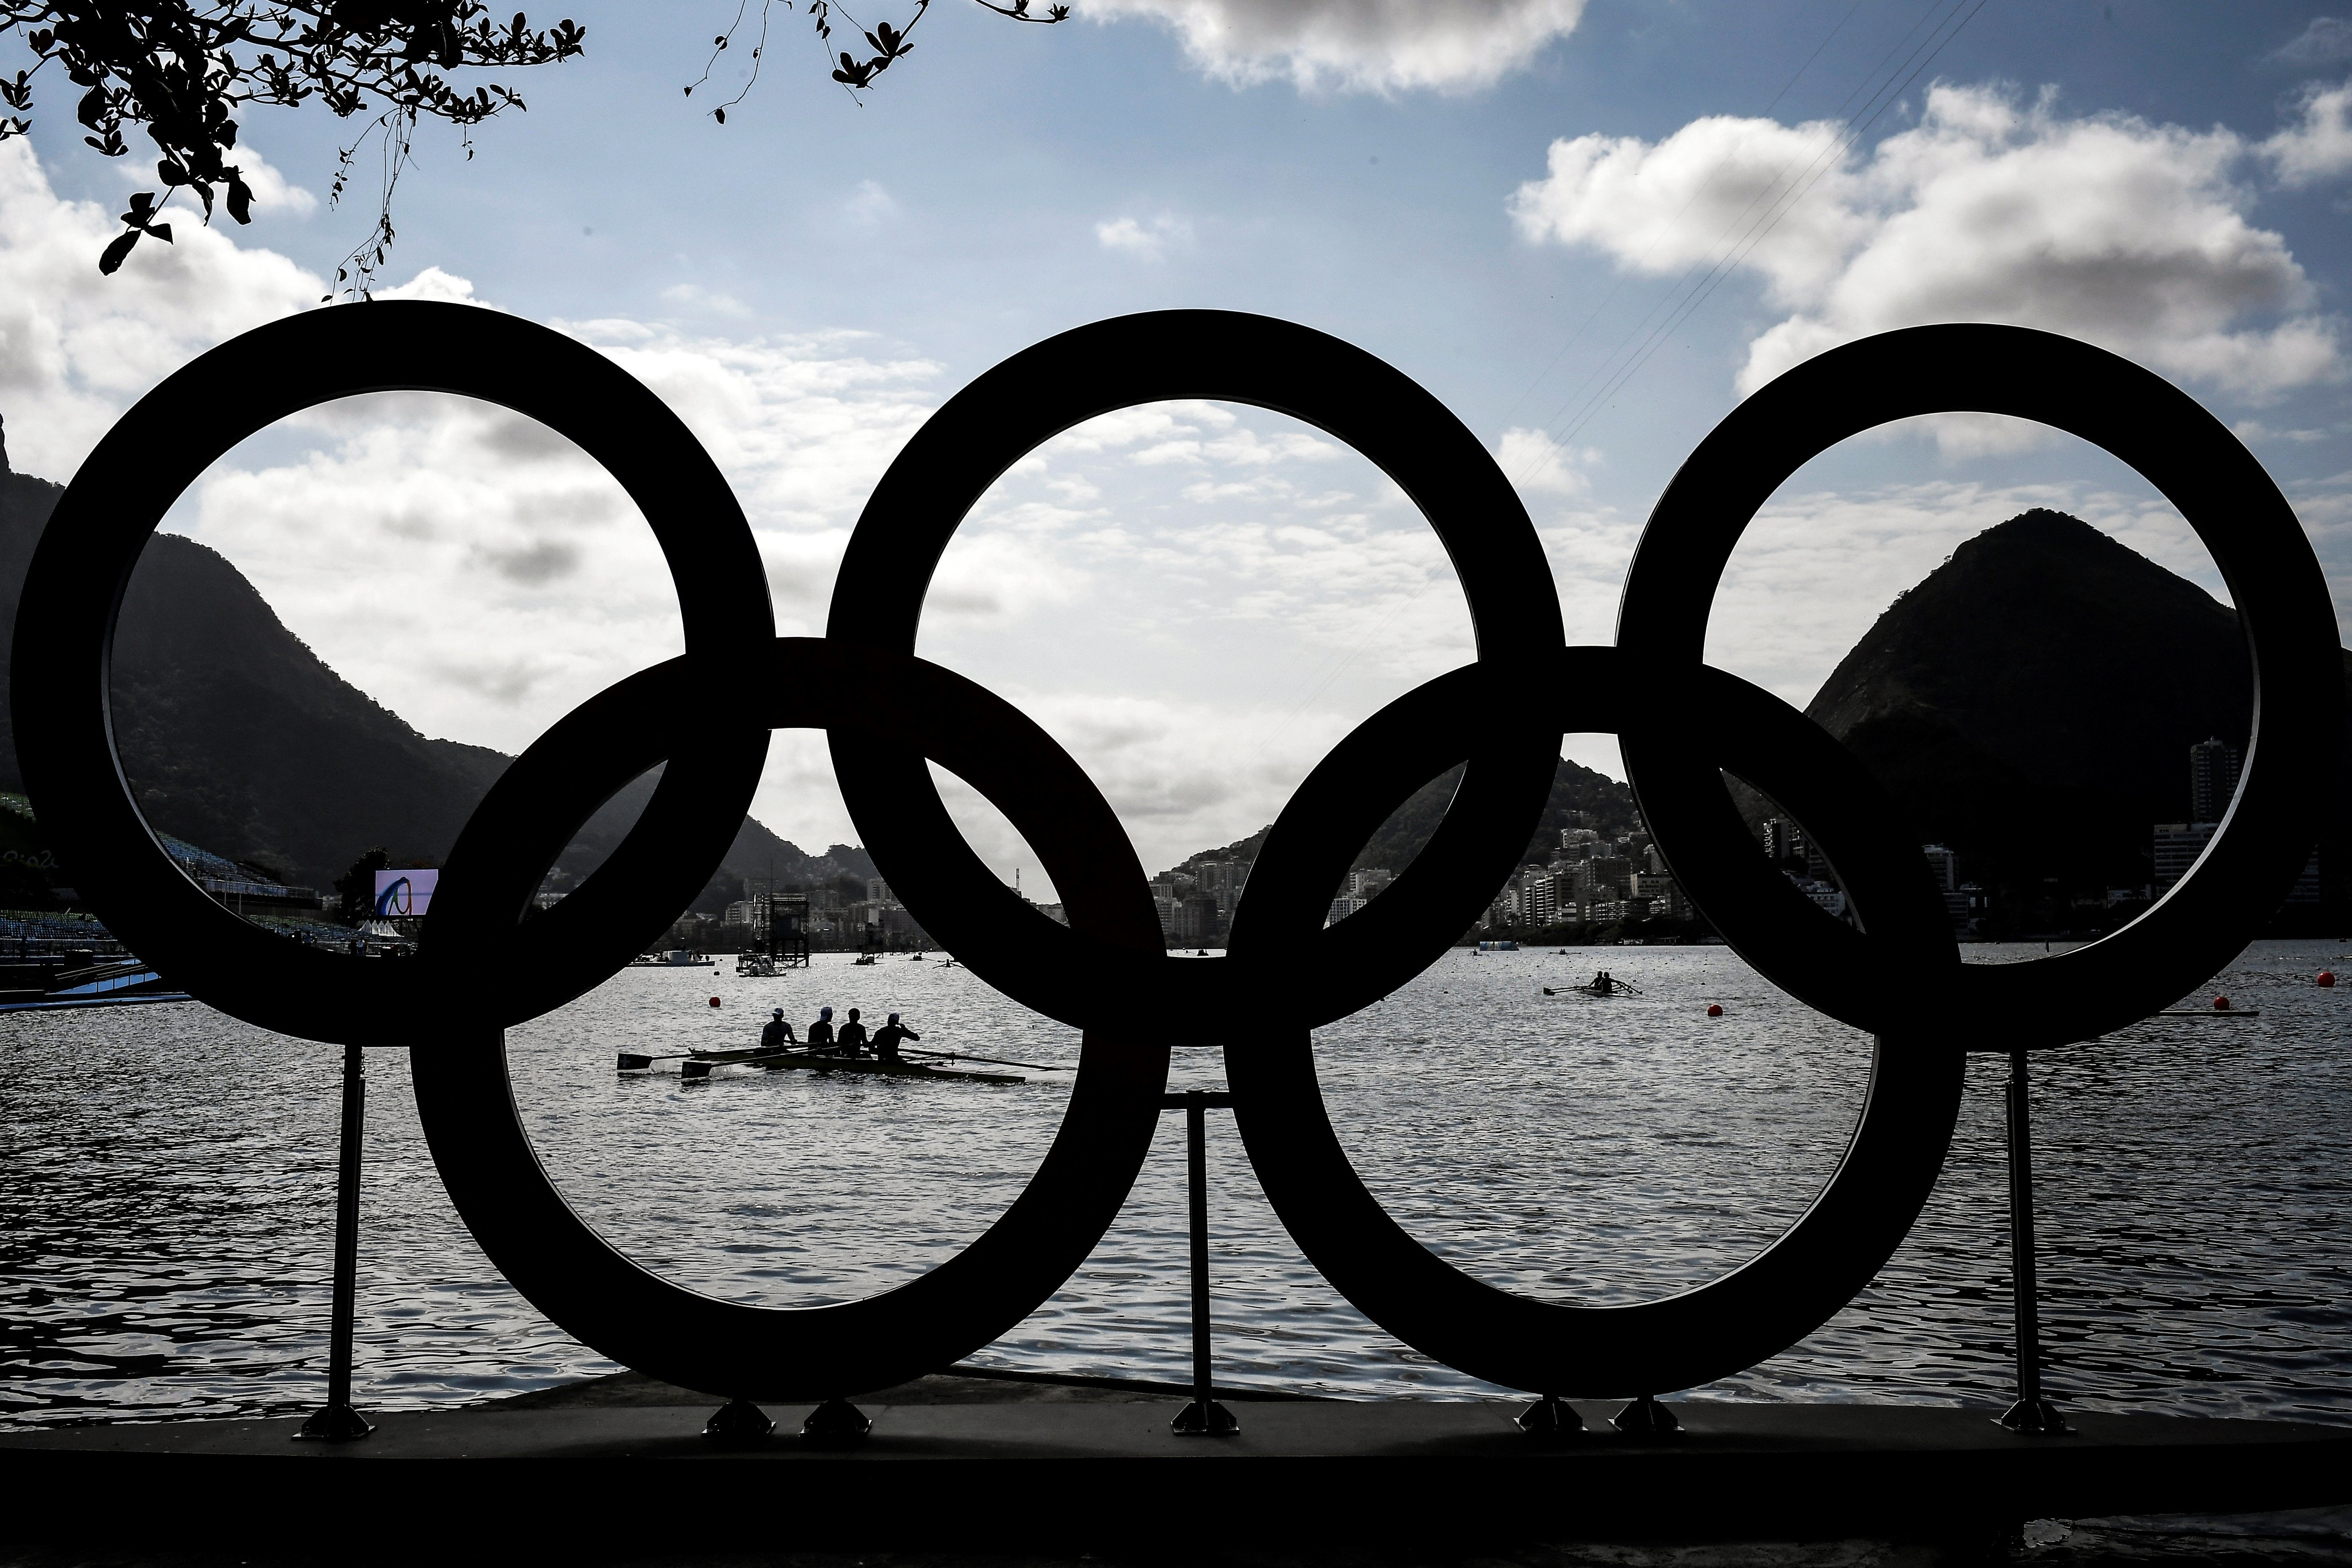 Rowers practice in front of the Olympic Rings at the Lagoa Rodrigo de Freitas ahead of the Rio 2016 Olympic Games in Rio de Janeiro on August 4, 2016.  / AFP / JEFF PACHOUD        (Photo credit should read JEFF PACHOUD/AFP/Getty Images)